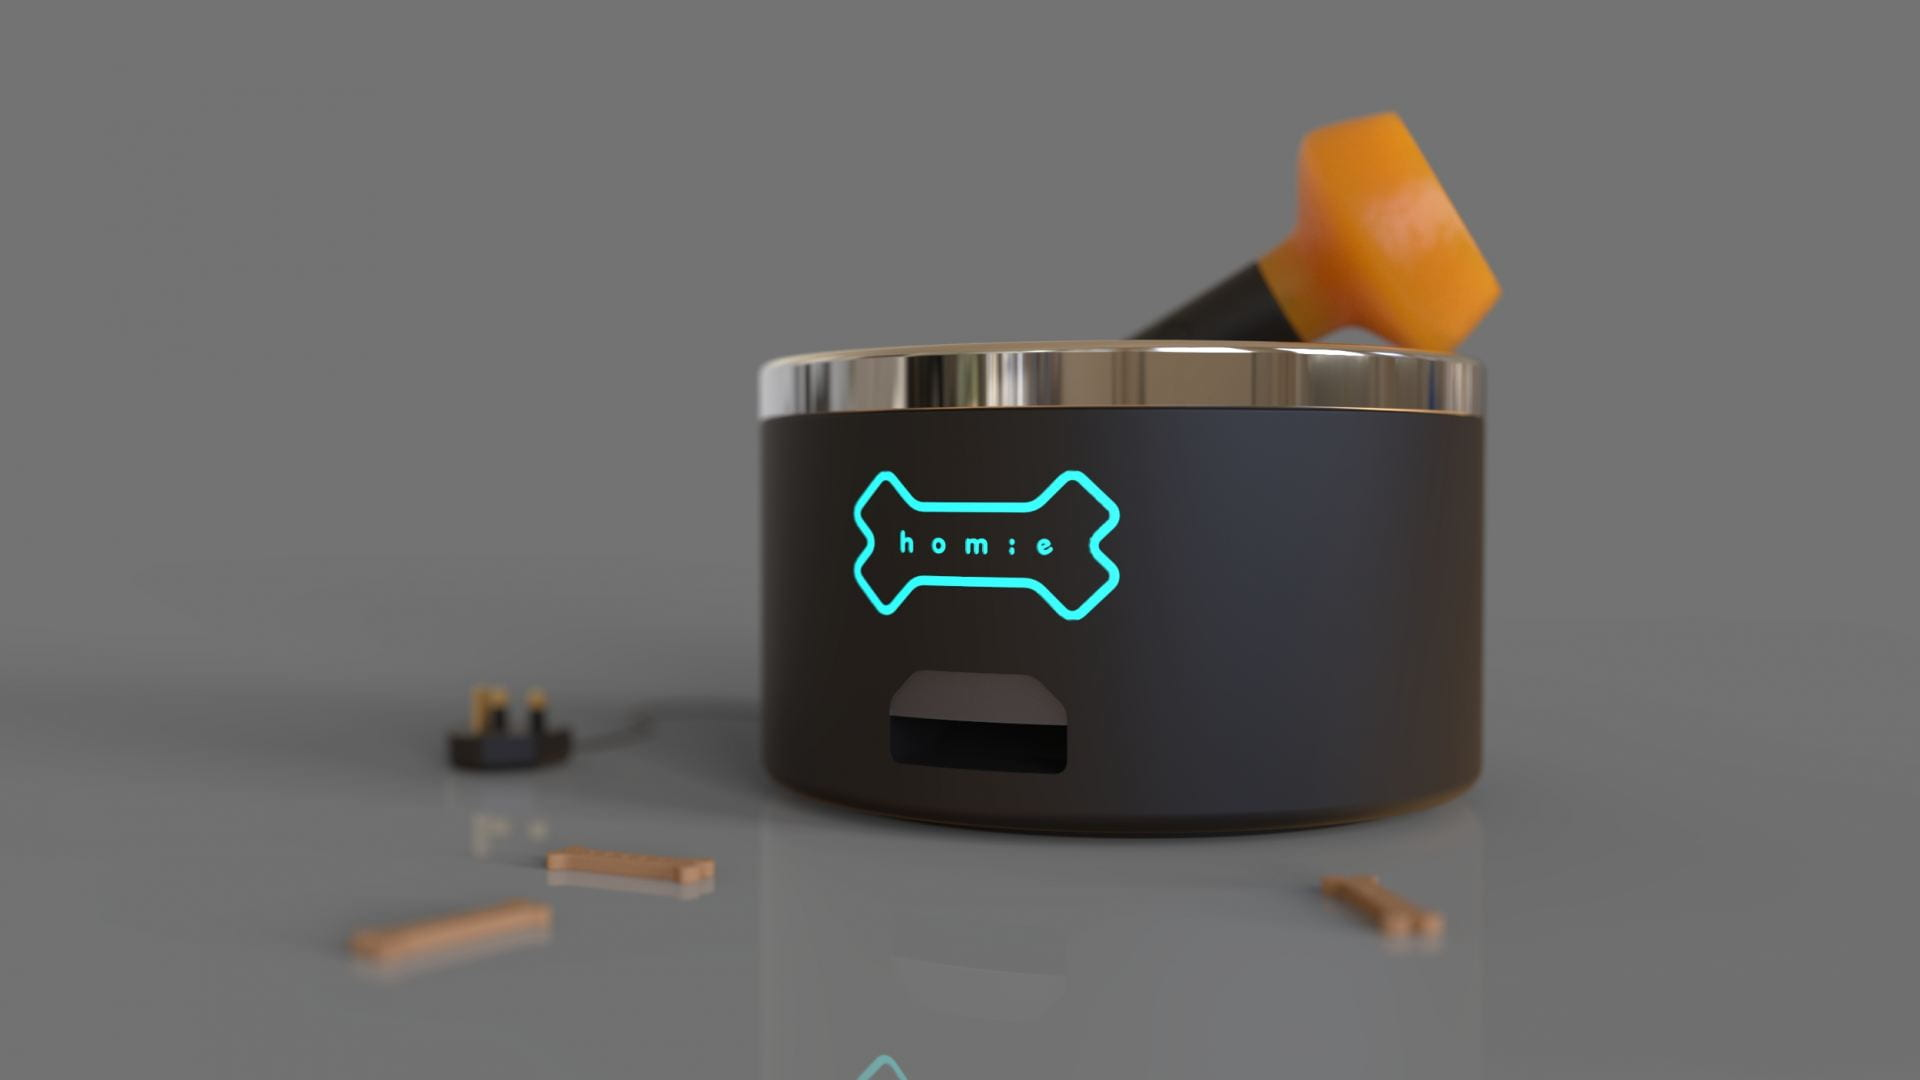 A dog bowl surrounded by some toys - Homie is a smart system that combats dog loneliness.